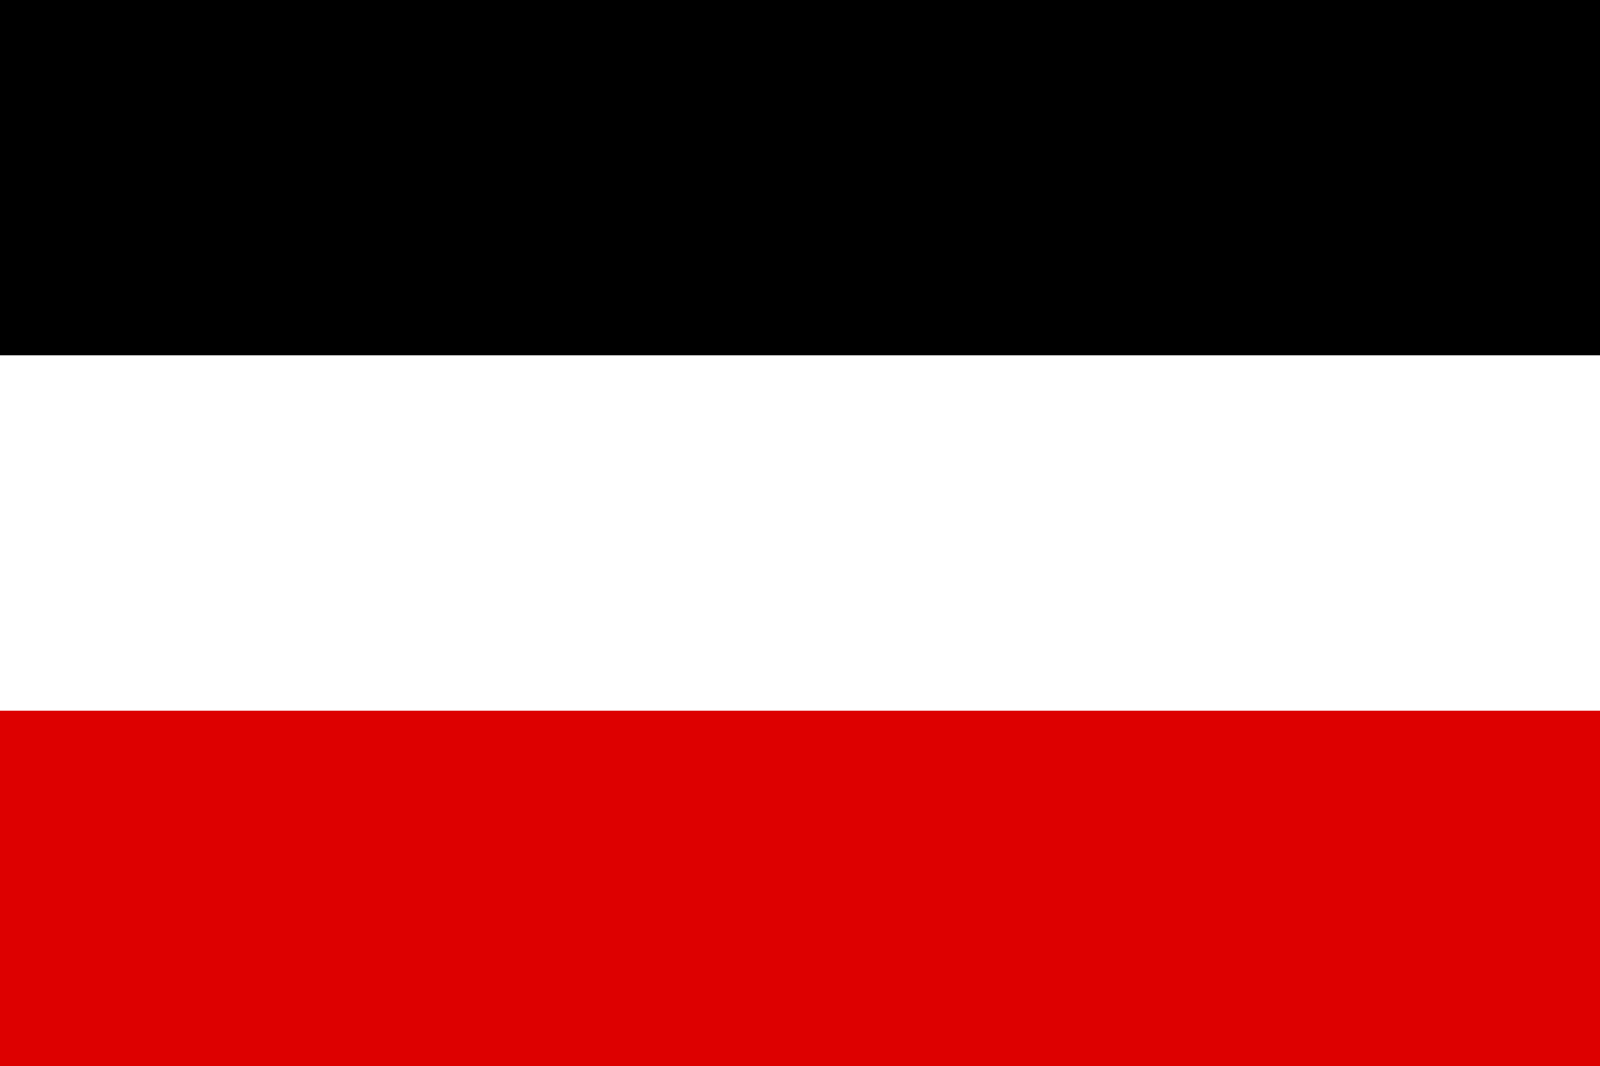 Nihilism in Germany: March 2015